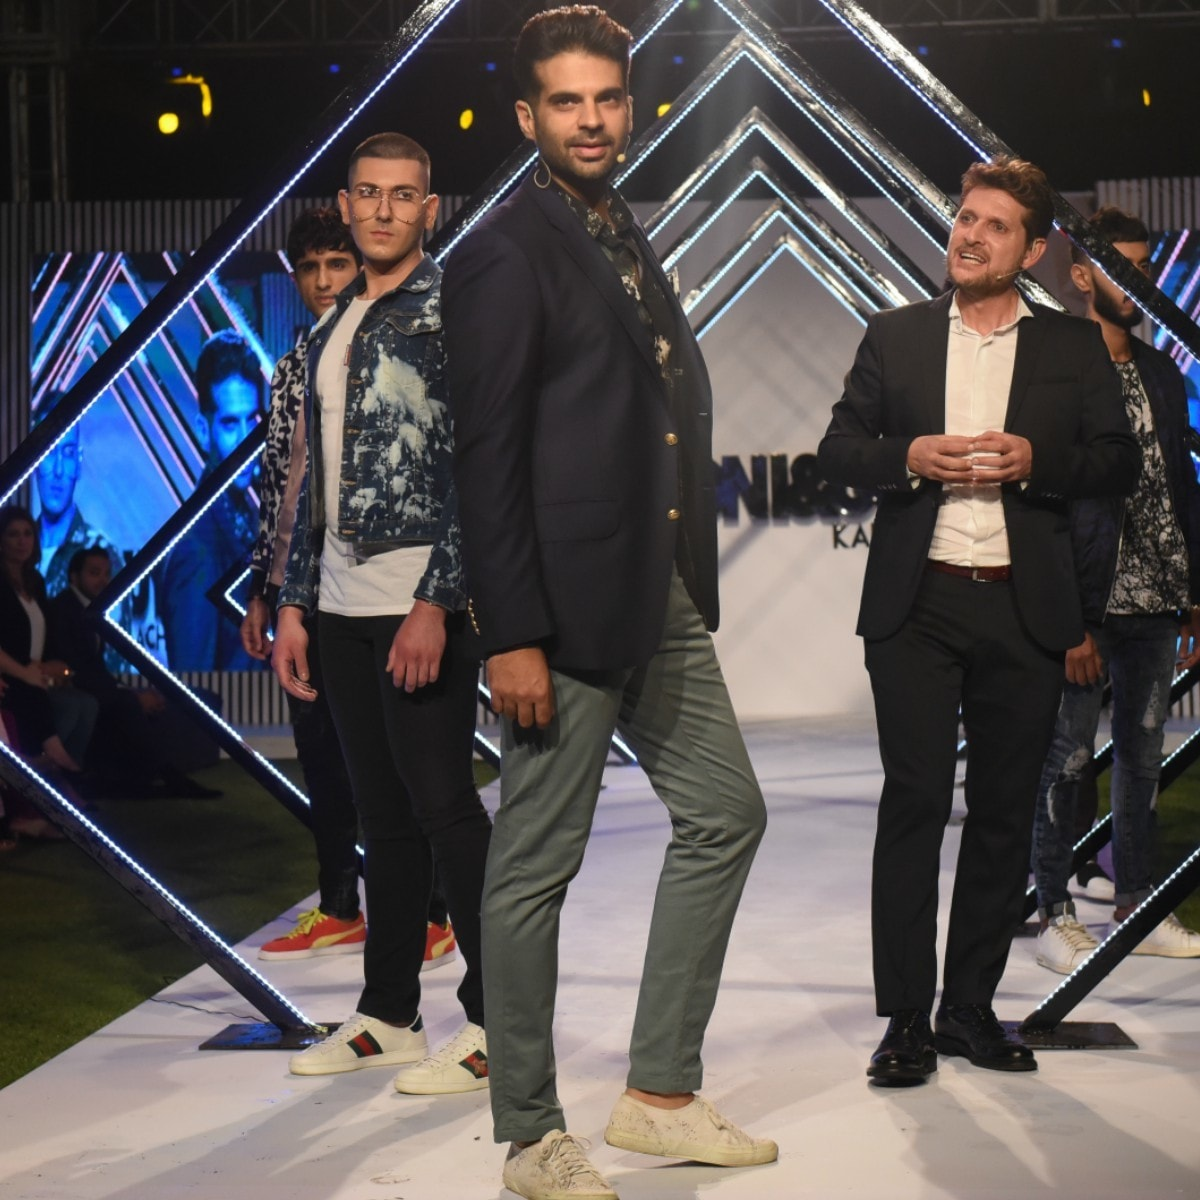 Host of the evening Adnan Malik takes his turn on the catwalk